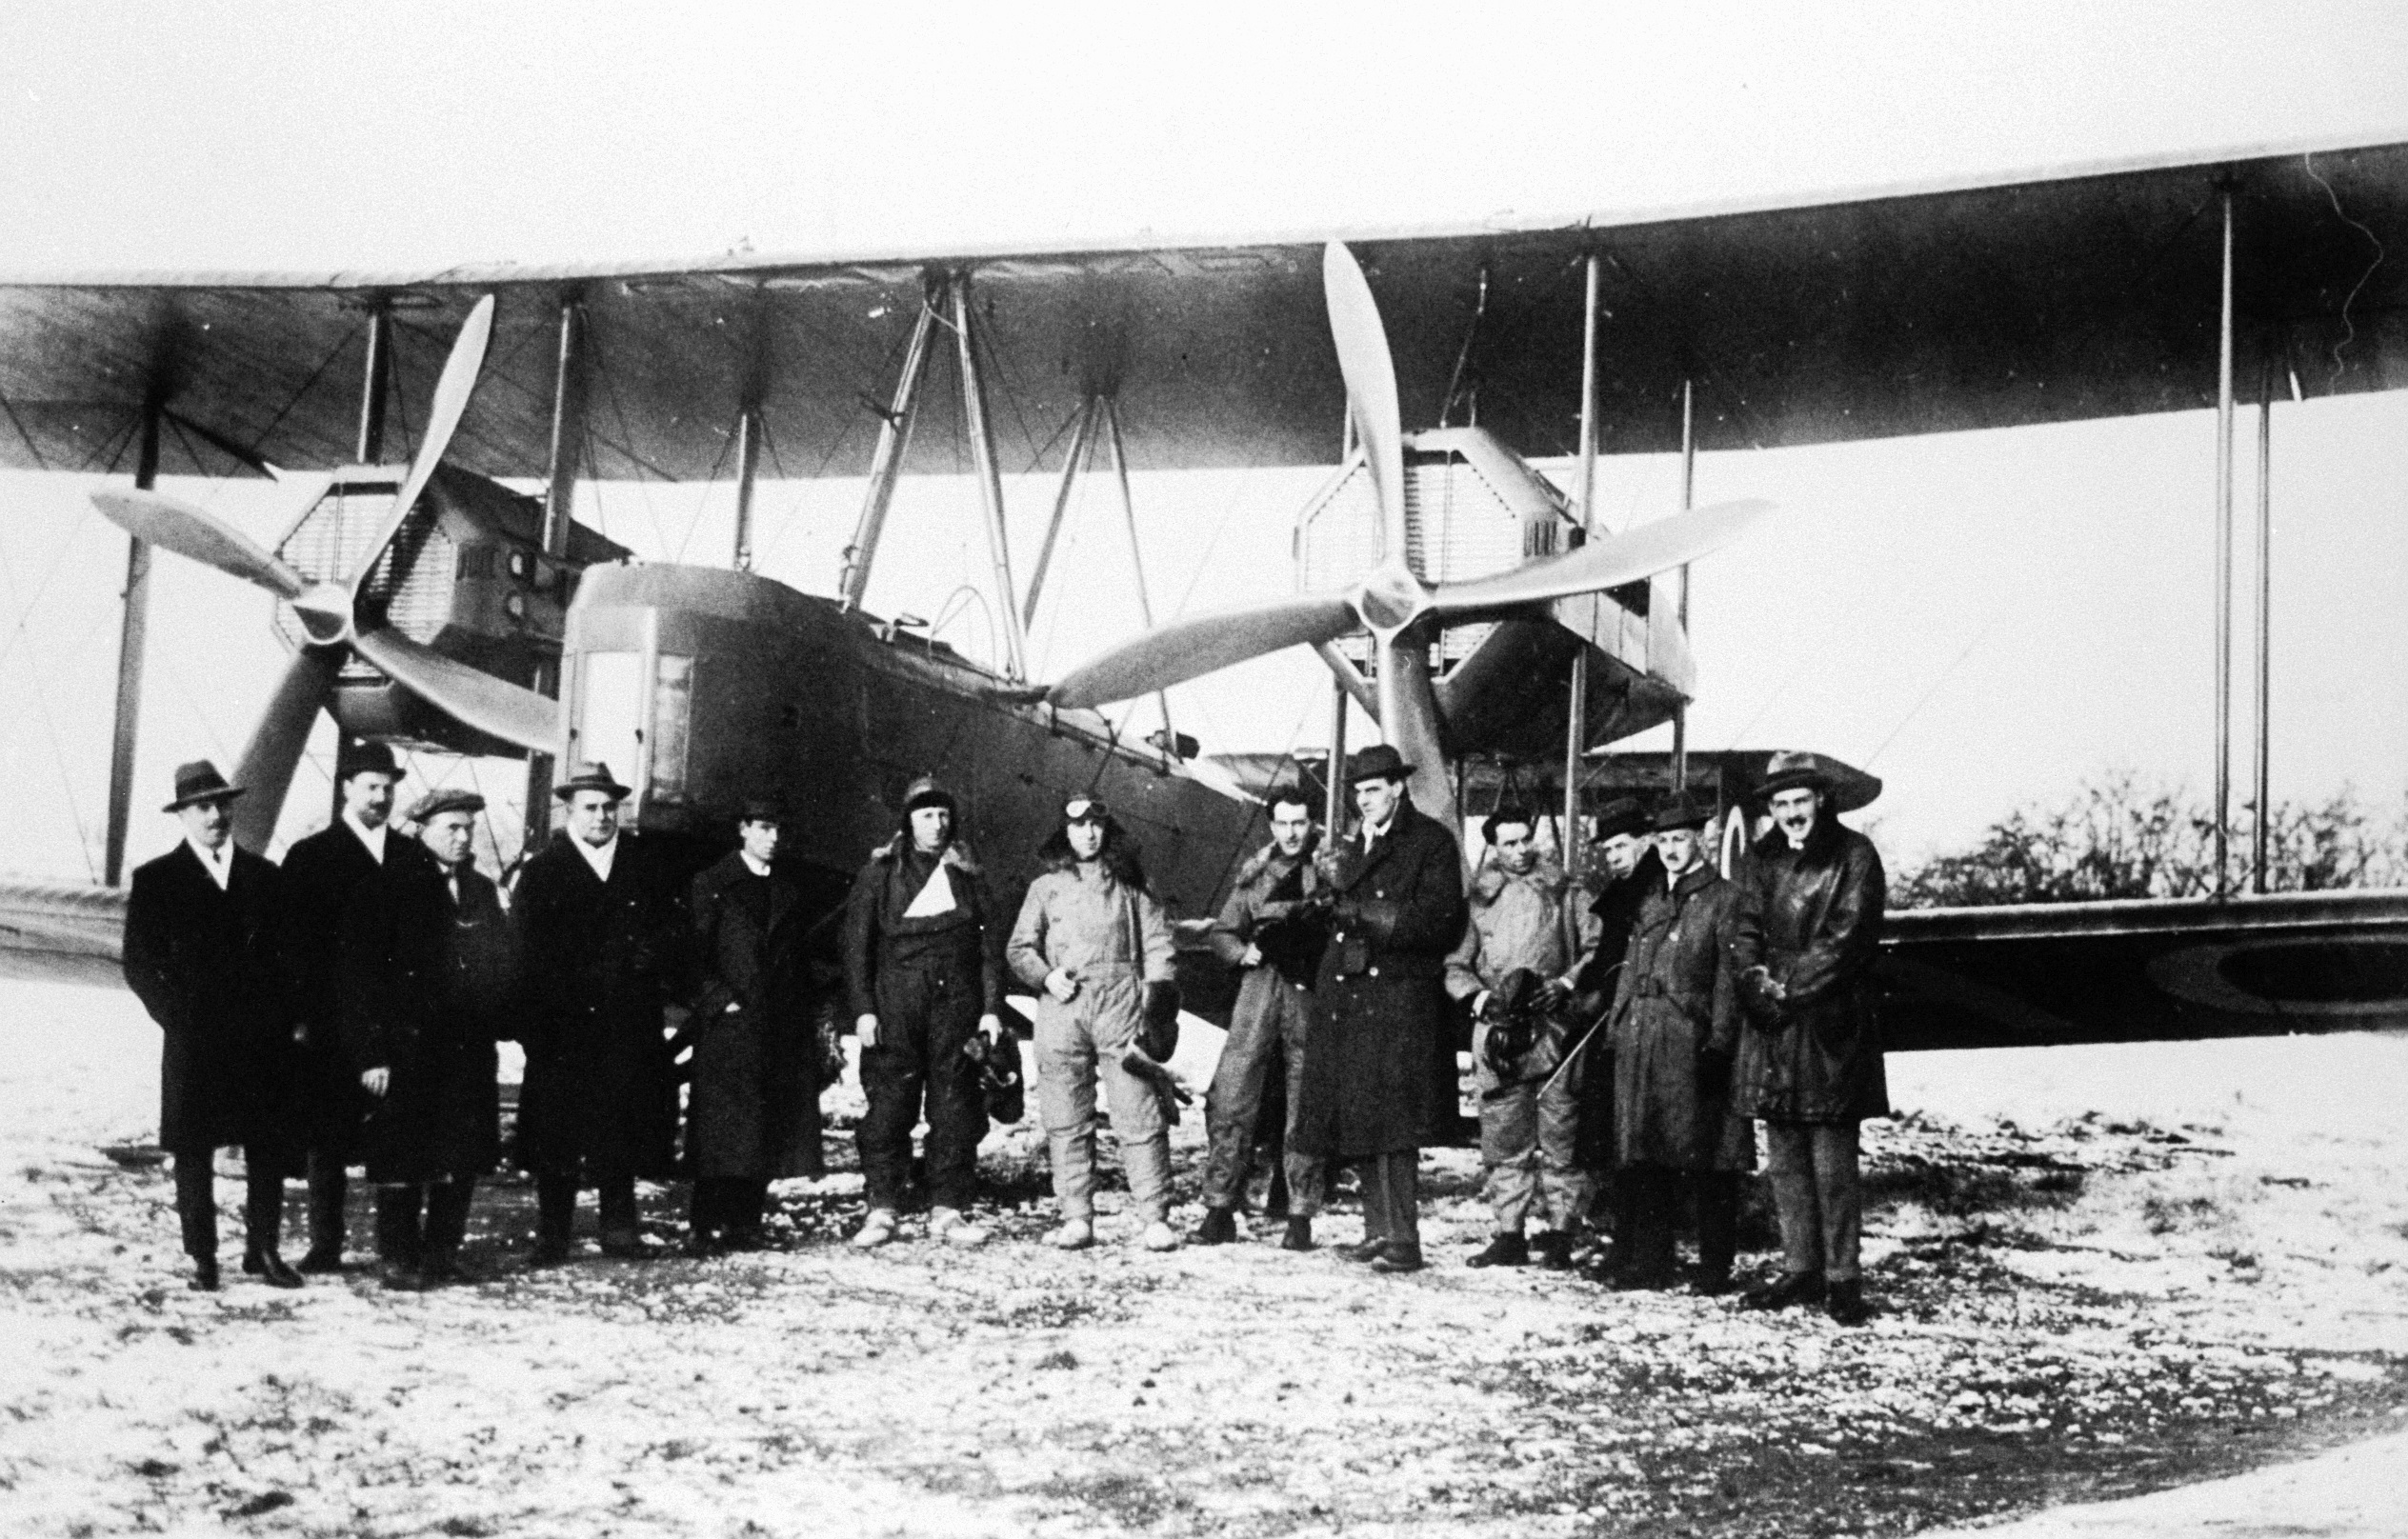 The Smith Brothers, Bennett and Shiers stand beside their Vickers Vimy aircraft before take-off at Hounslow Heath in 1919.